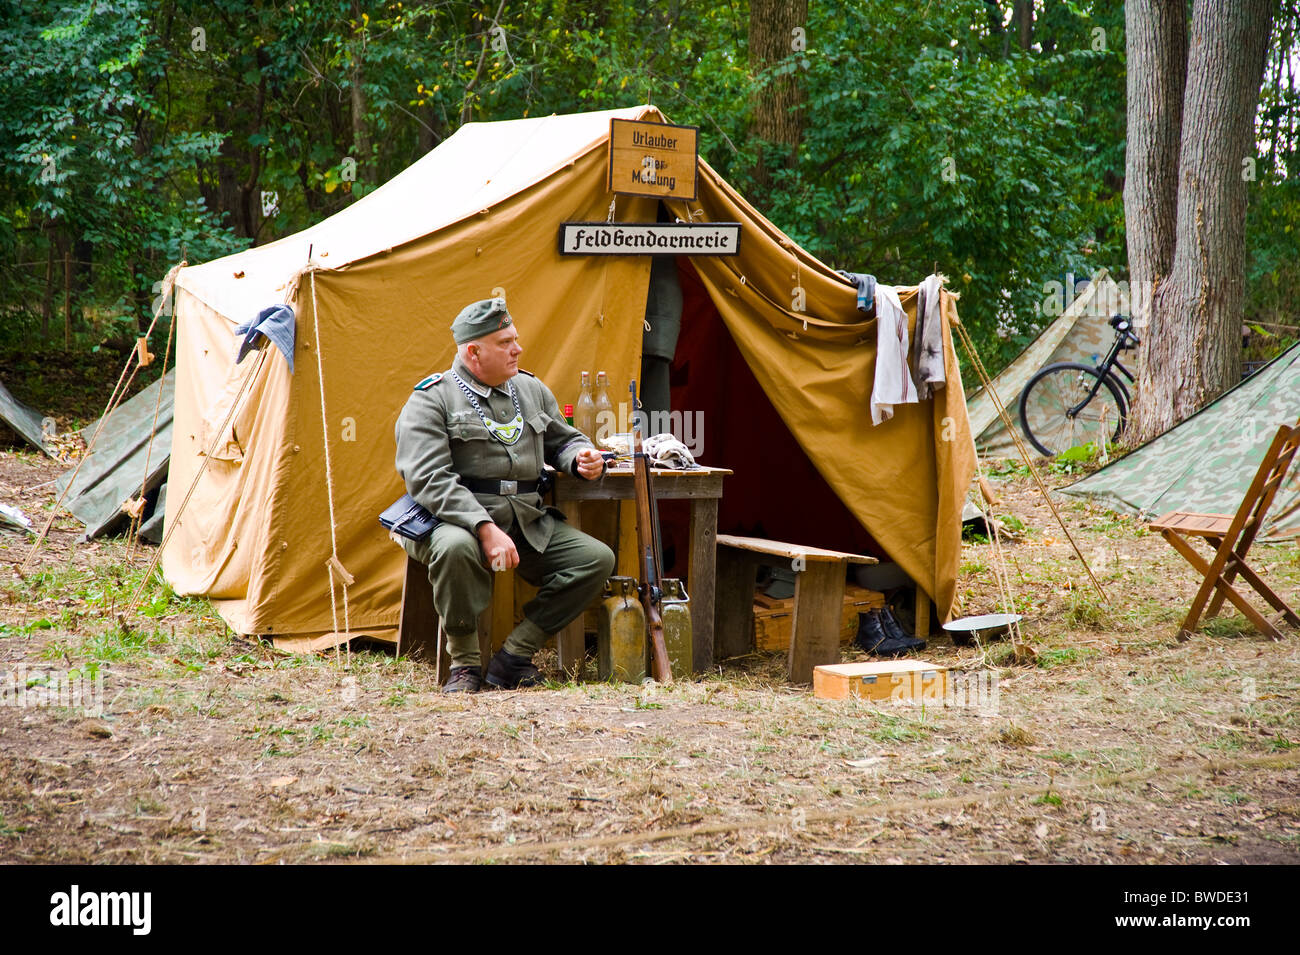 German army officer world war two time sitting near tent c& c&ing acting show wood forest bench table & German army officer world war two time sitting near tent camp ...